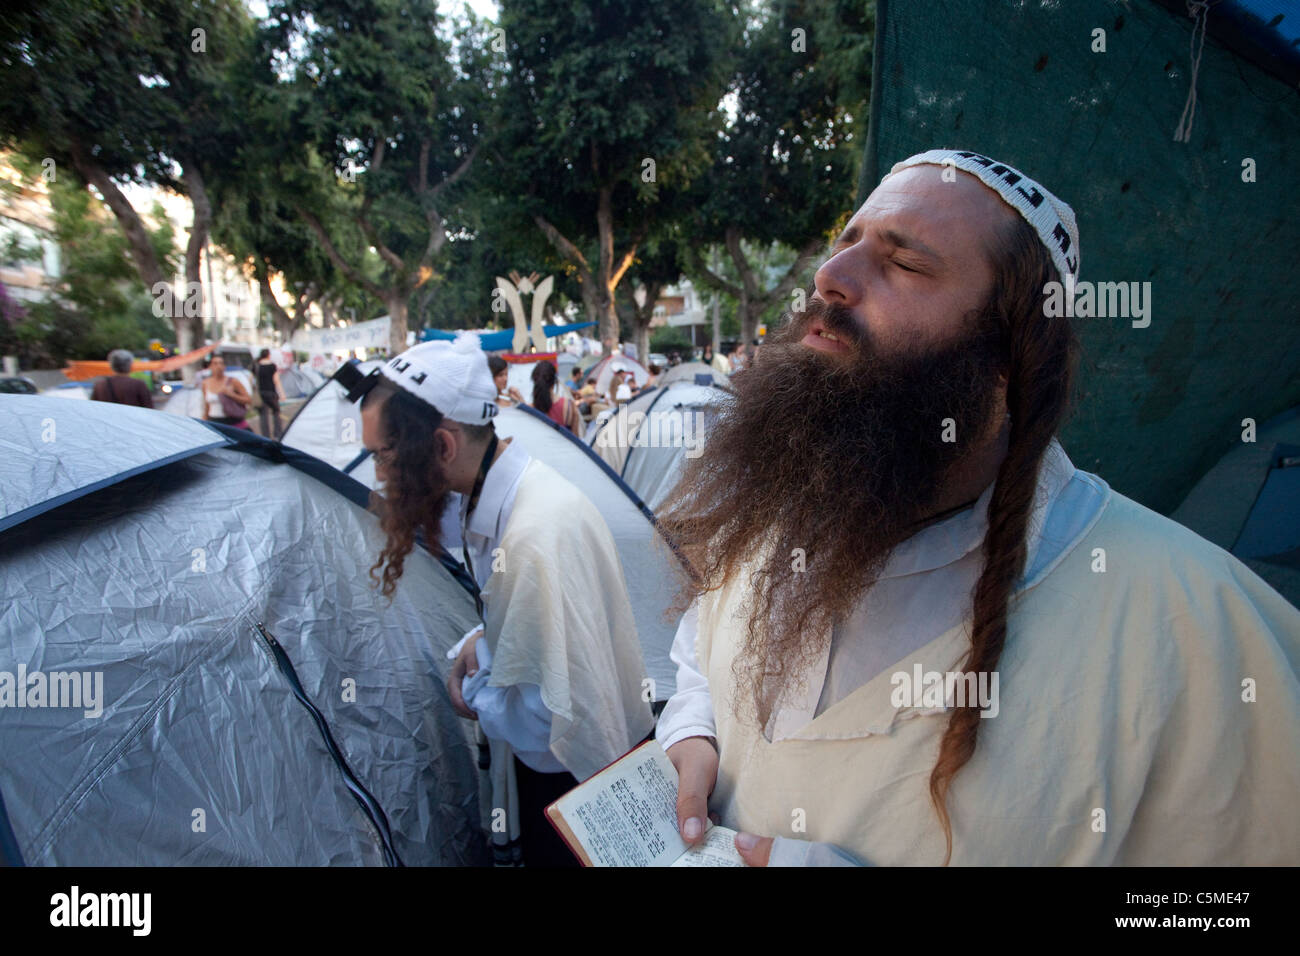 Followers of the Breslov Hassidic Jewish movement praying in the Tent City compound in Rothschild avenue in Central - Stock Image